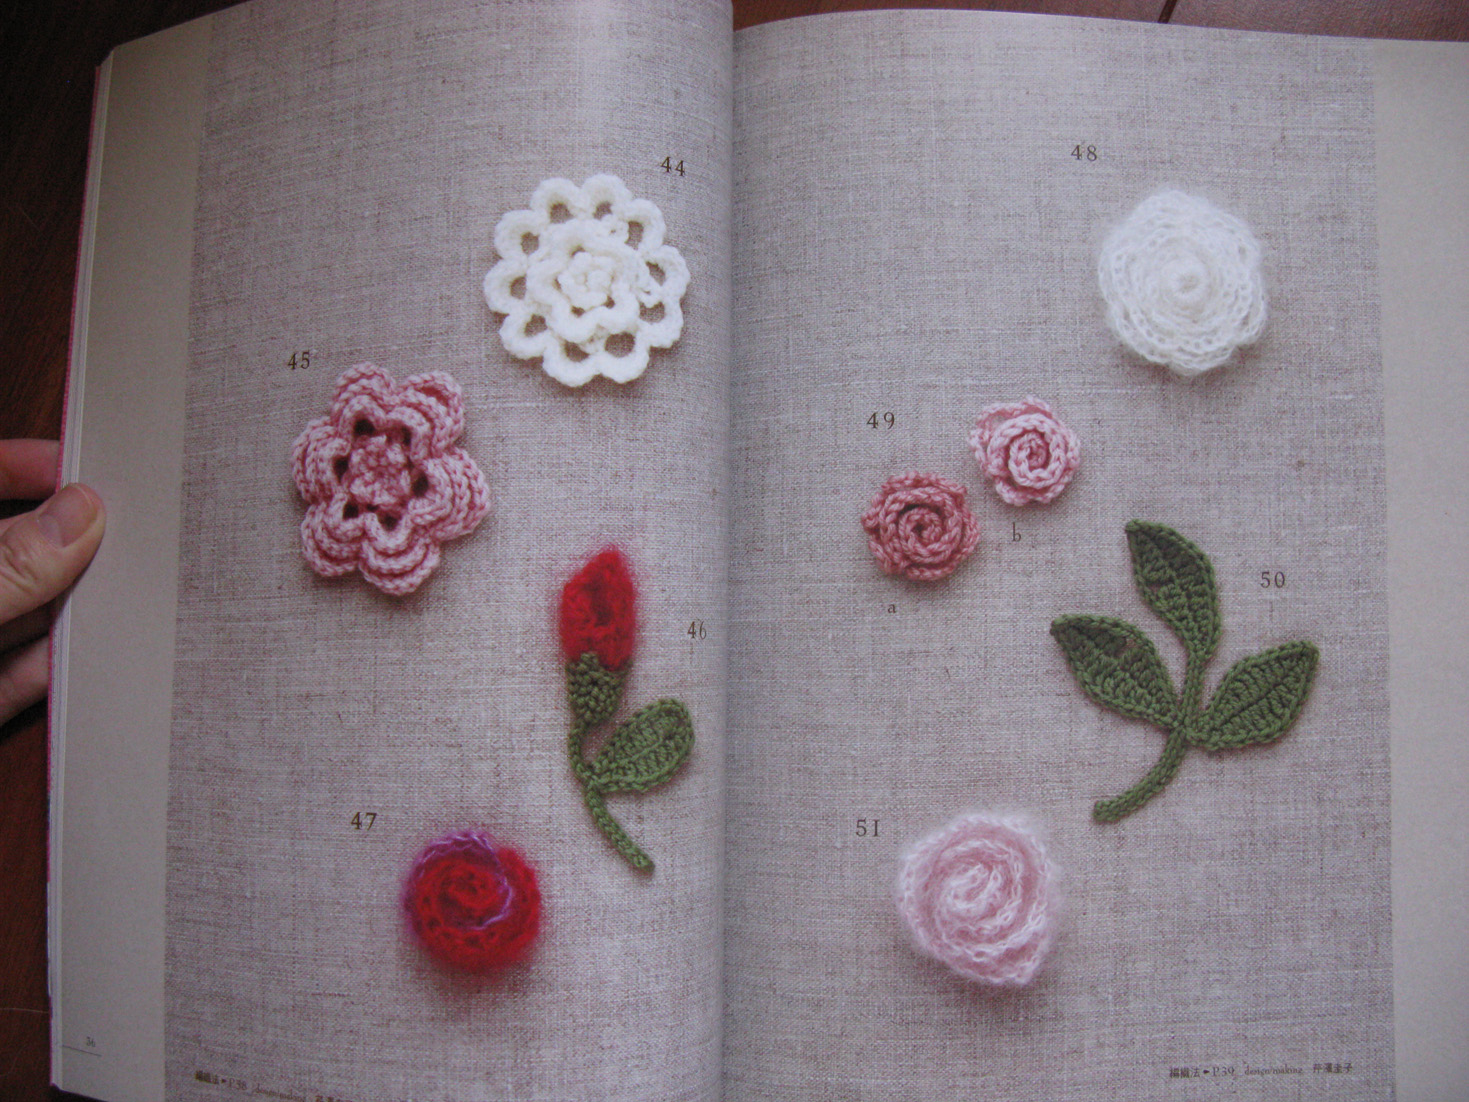 Crochet Rose Pattern : ... .com: Crochet Rose Pattern 100 Japanese Crochet Patterns Book